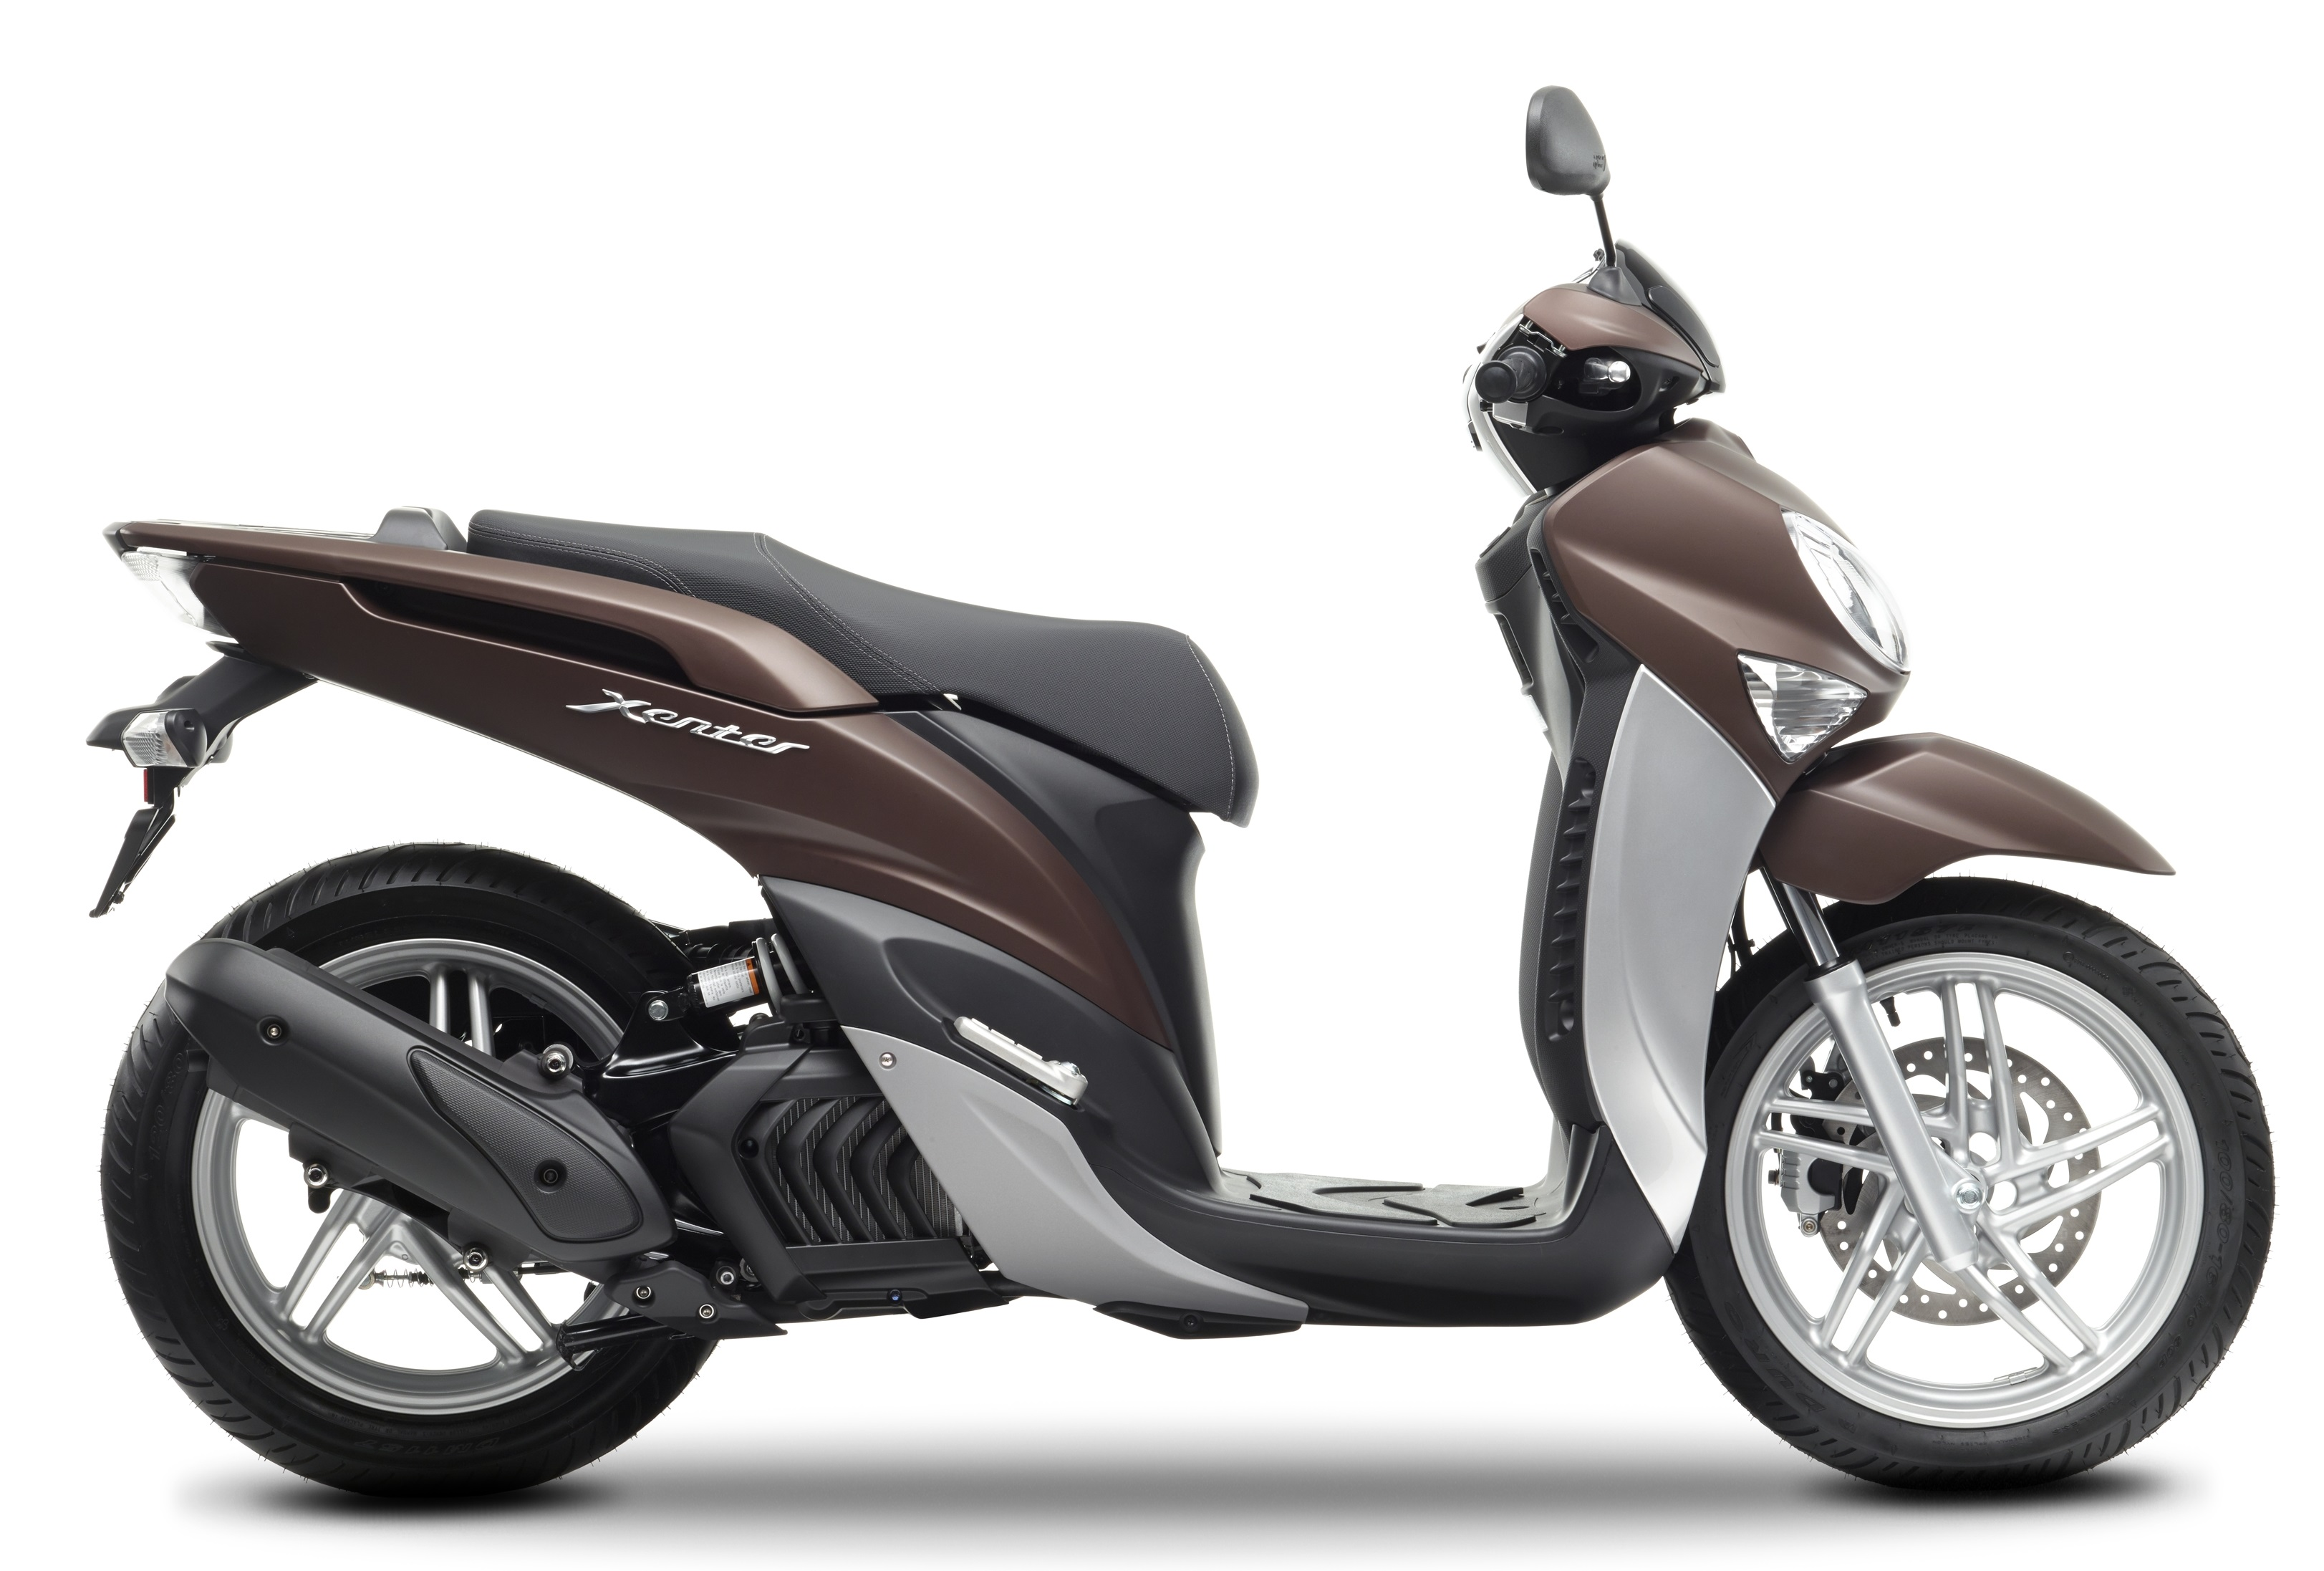 For Sale Yamaha Xenter The Bike Market Wiring Diagram Fino